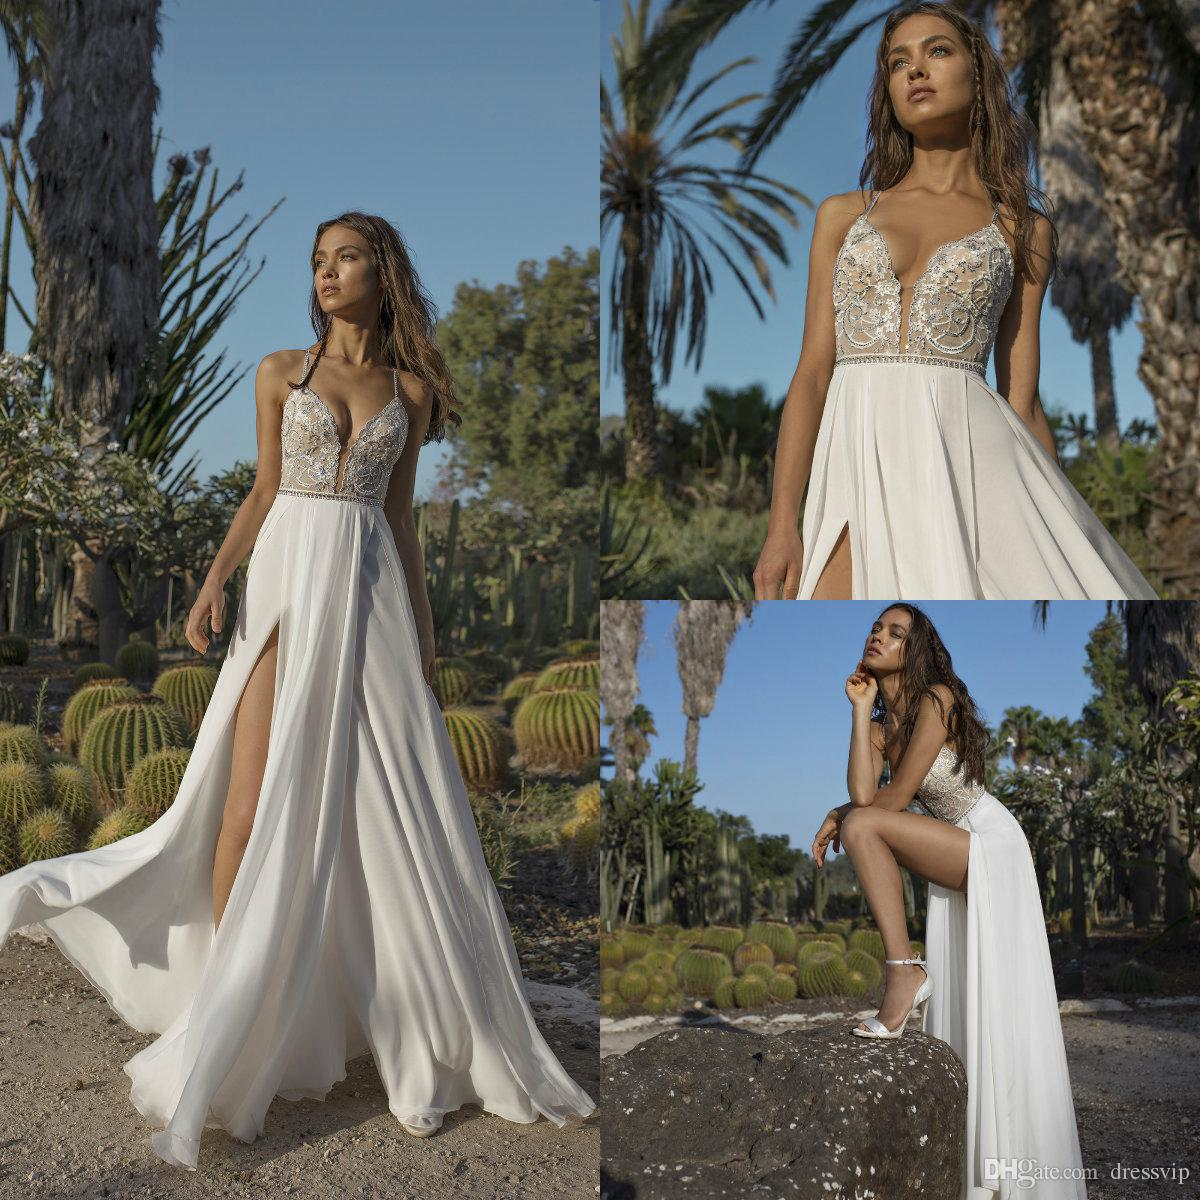 a07e5dc270d Discount 2018 Asaf Dadush Boho Wedding Dresses Applique Sequins Beaded Side  Split Beach Wedding Gowns Chiffon Backless Plus Size Bridal Dress Wedding  Dress ...